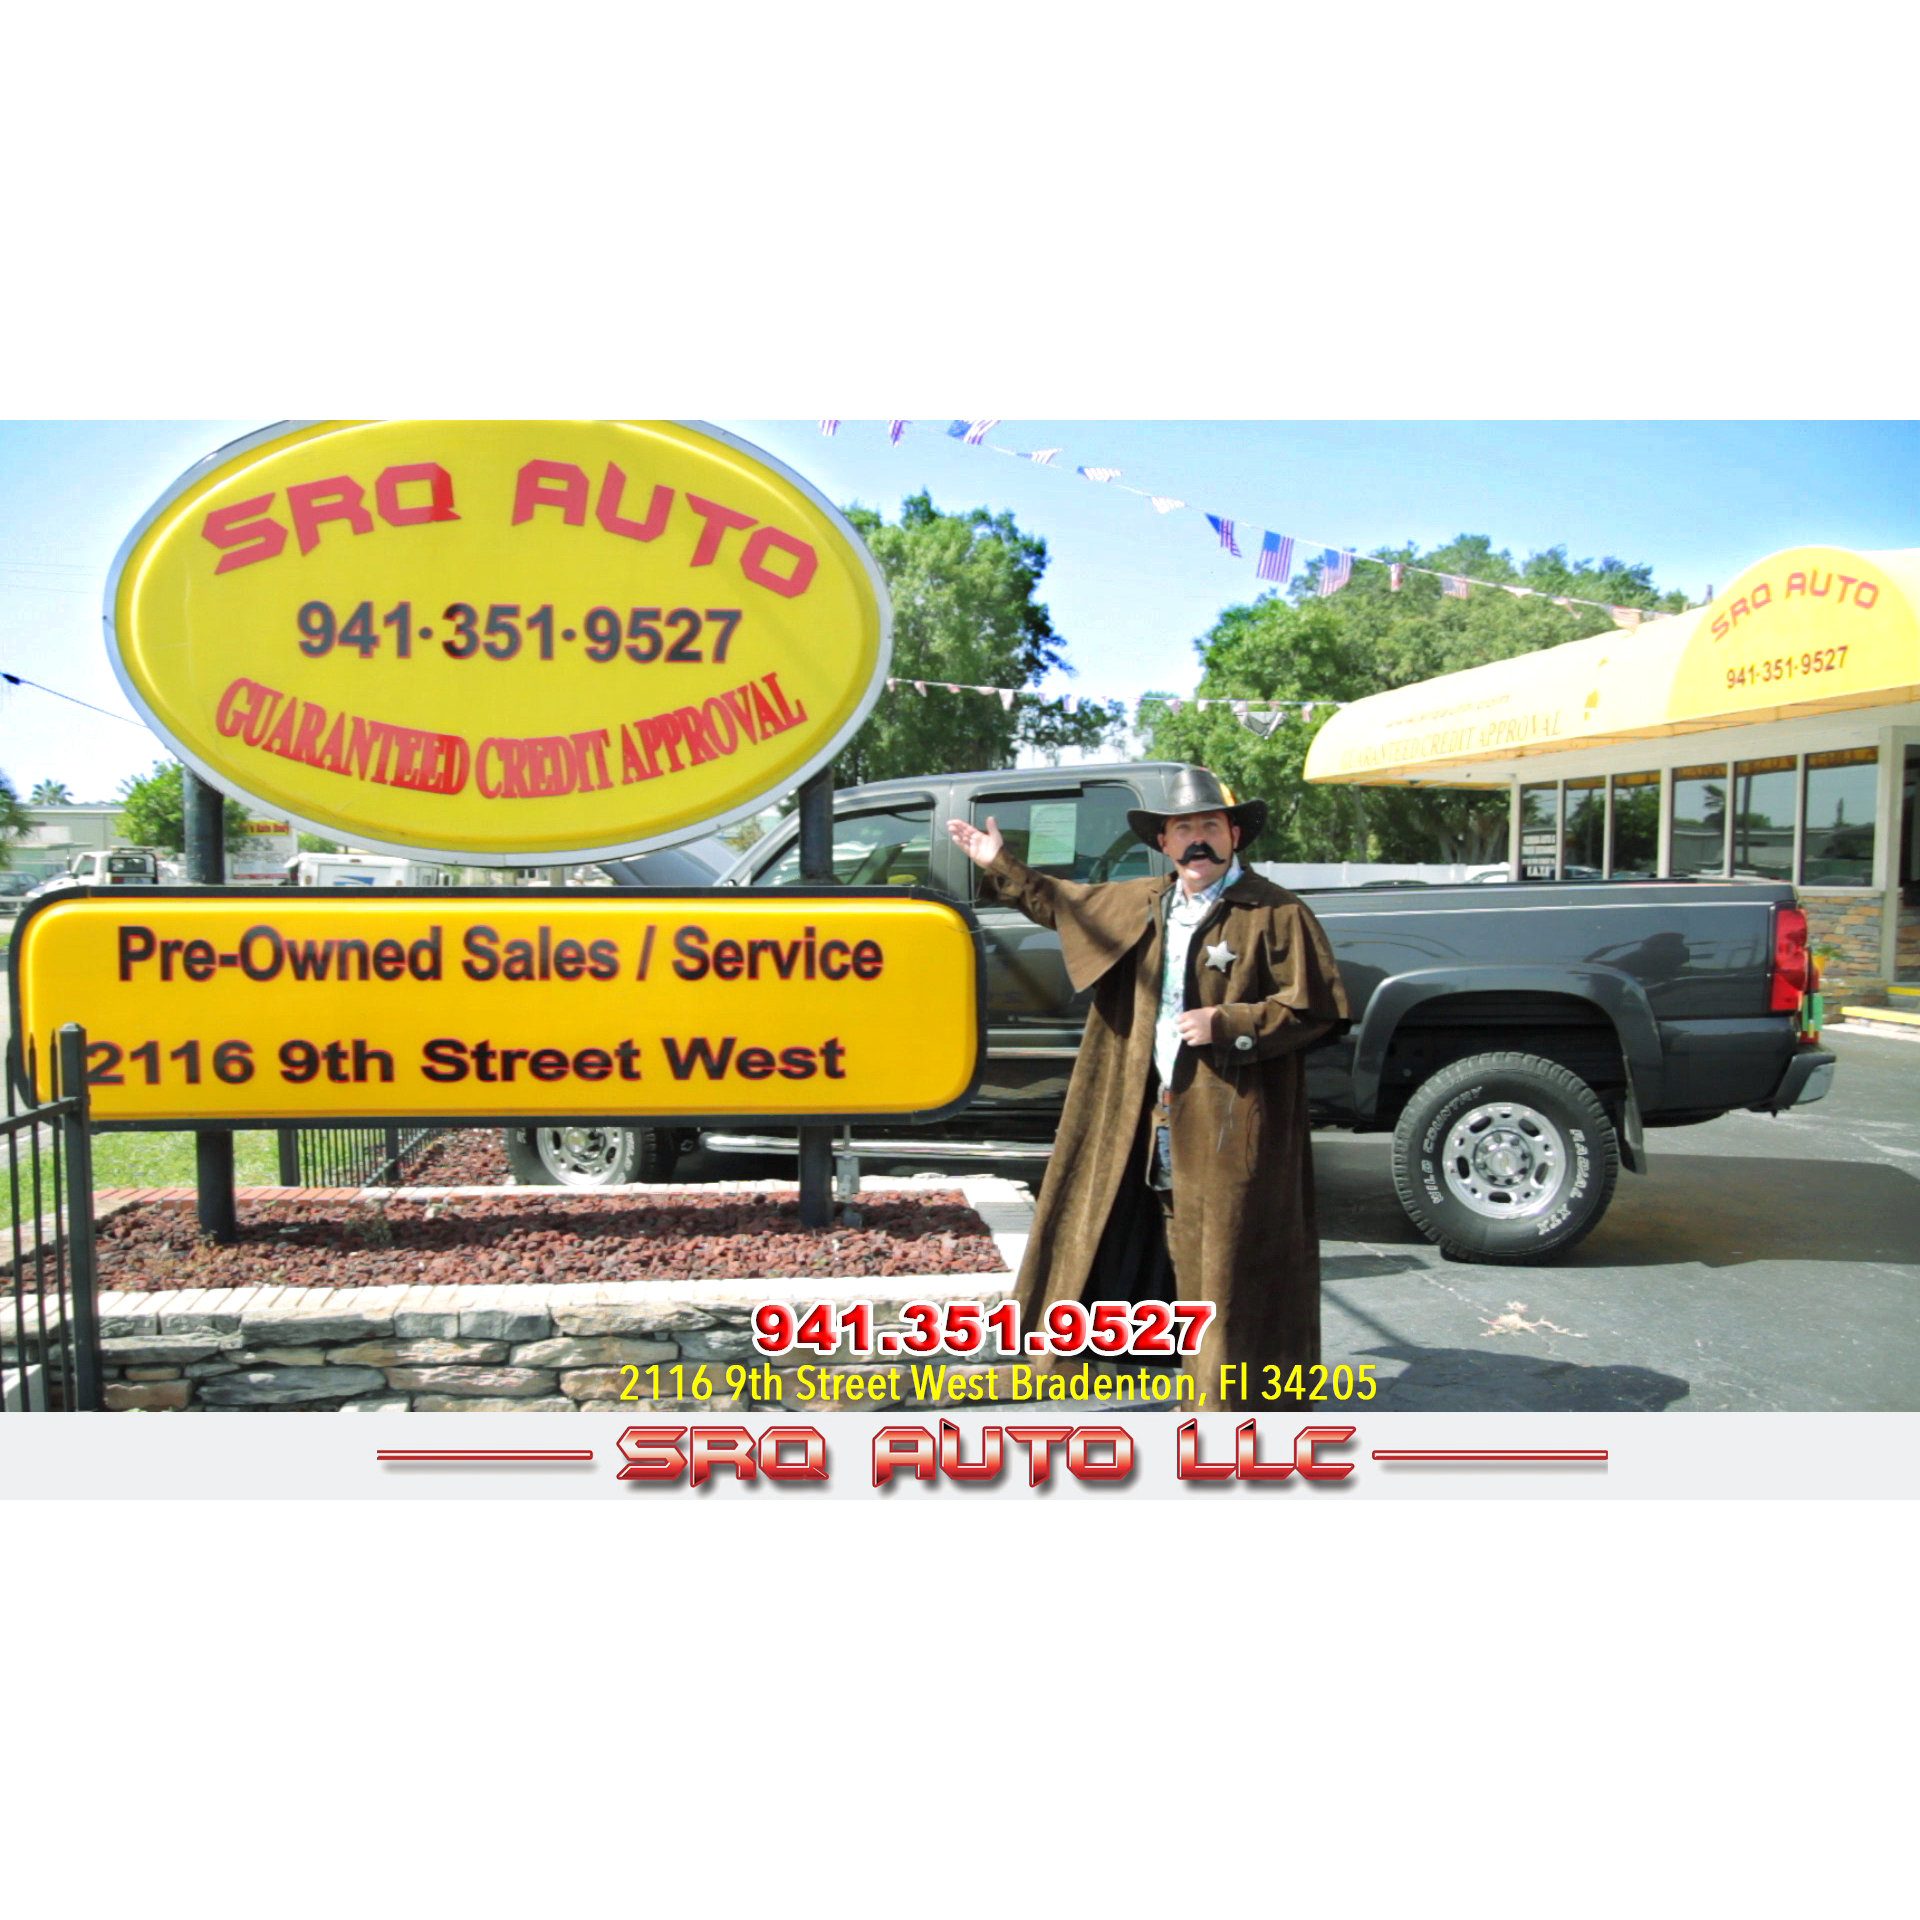 srq auto llc in bradenton fl 34205